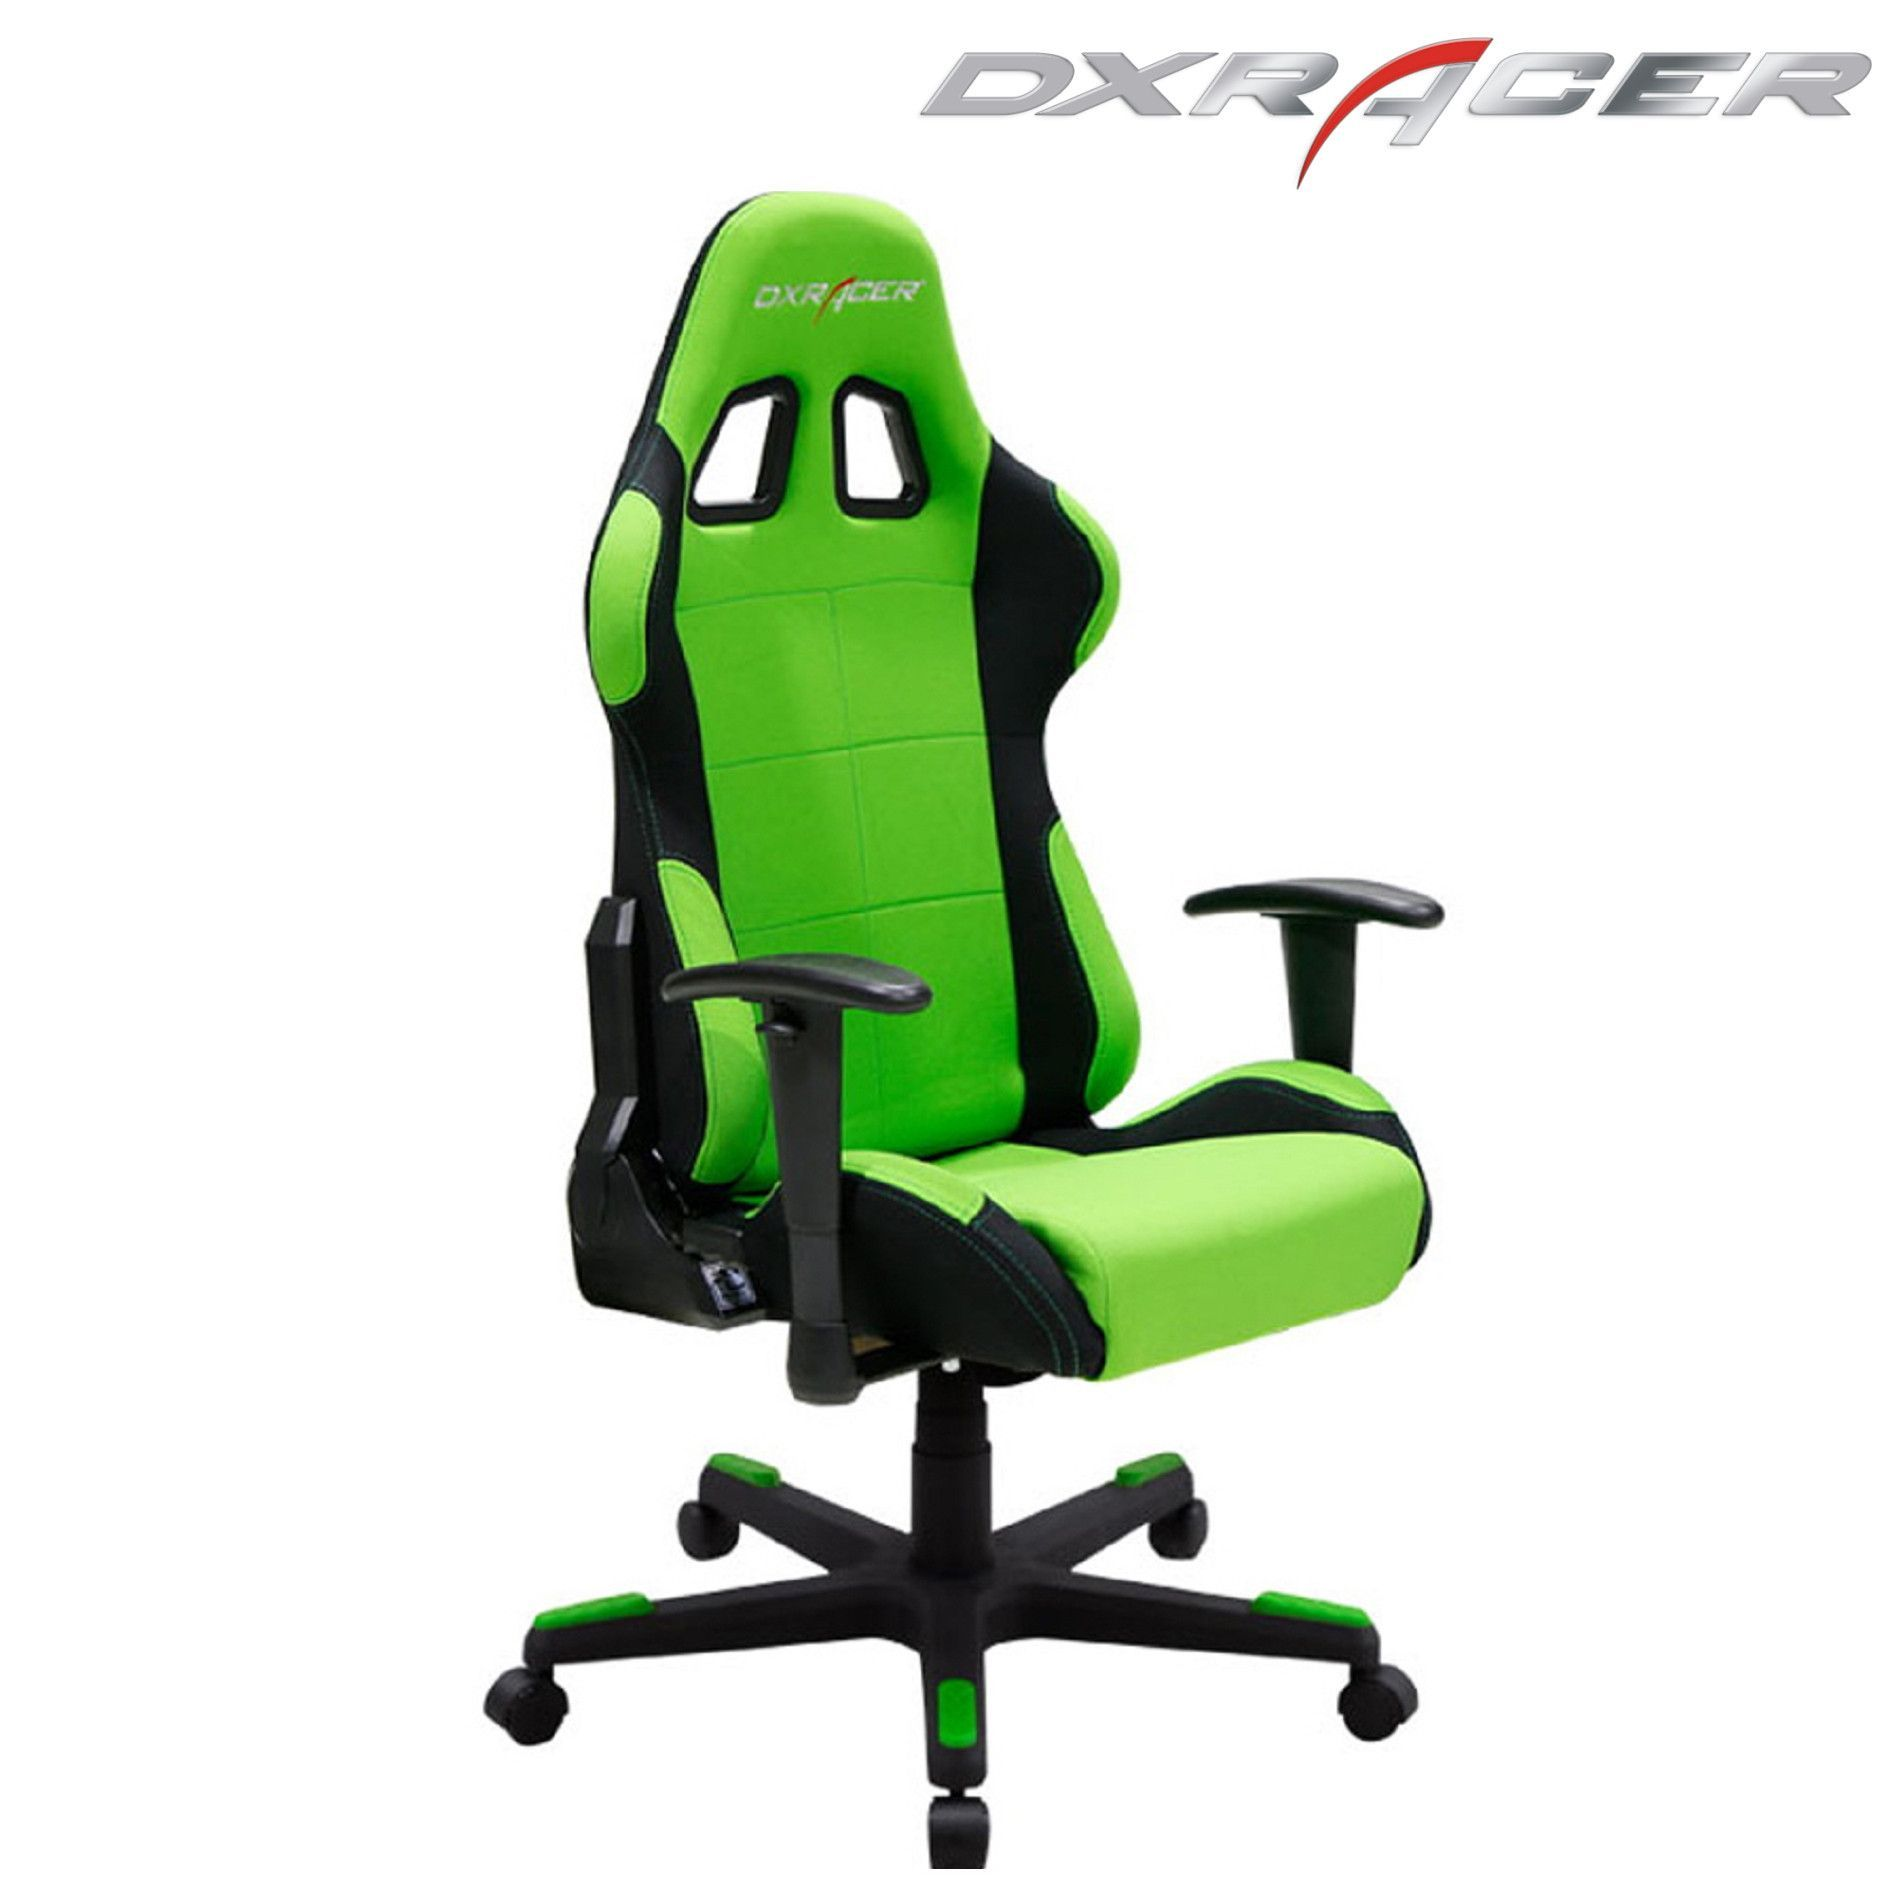 Dxracer Fd01en Office Chair Gaming Chair Automotive Seat Computer Chair Green Computer Chair Green Chair Office Gaming Chair